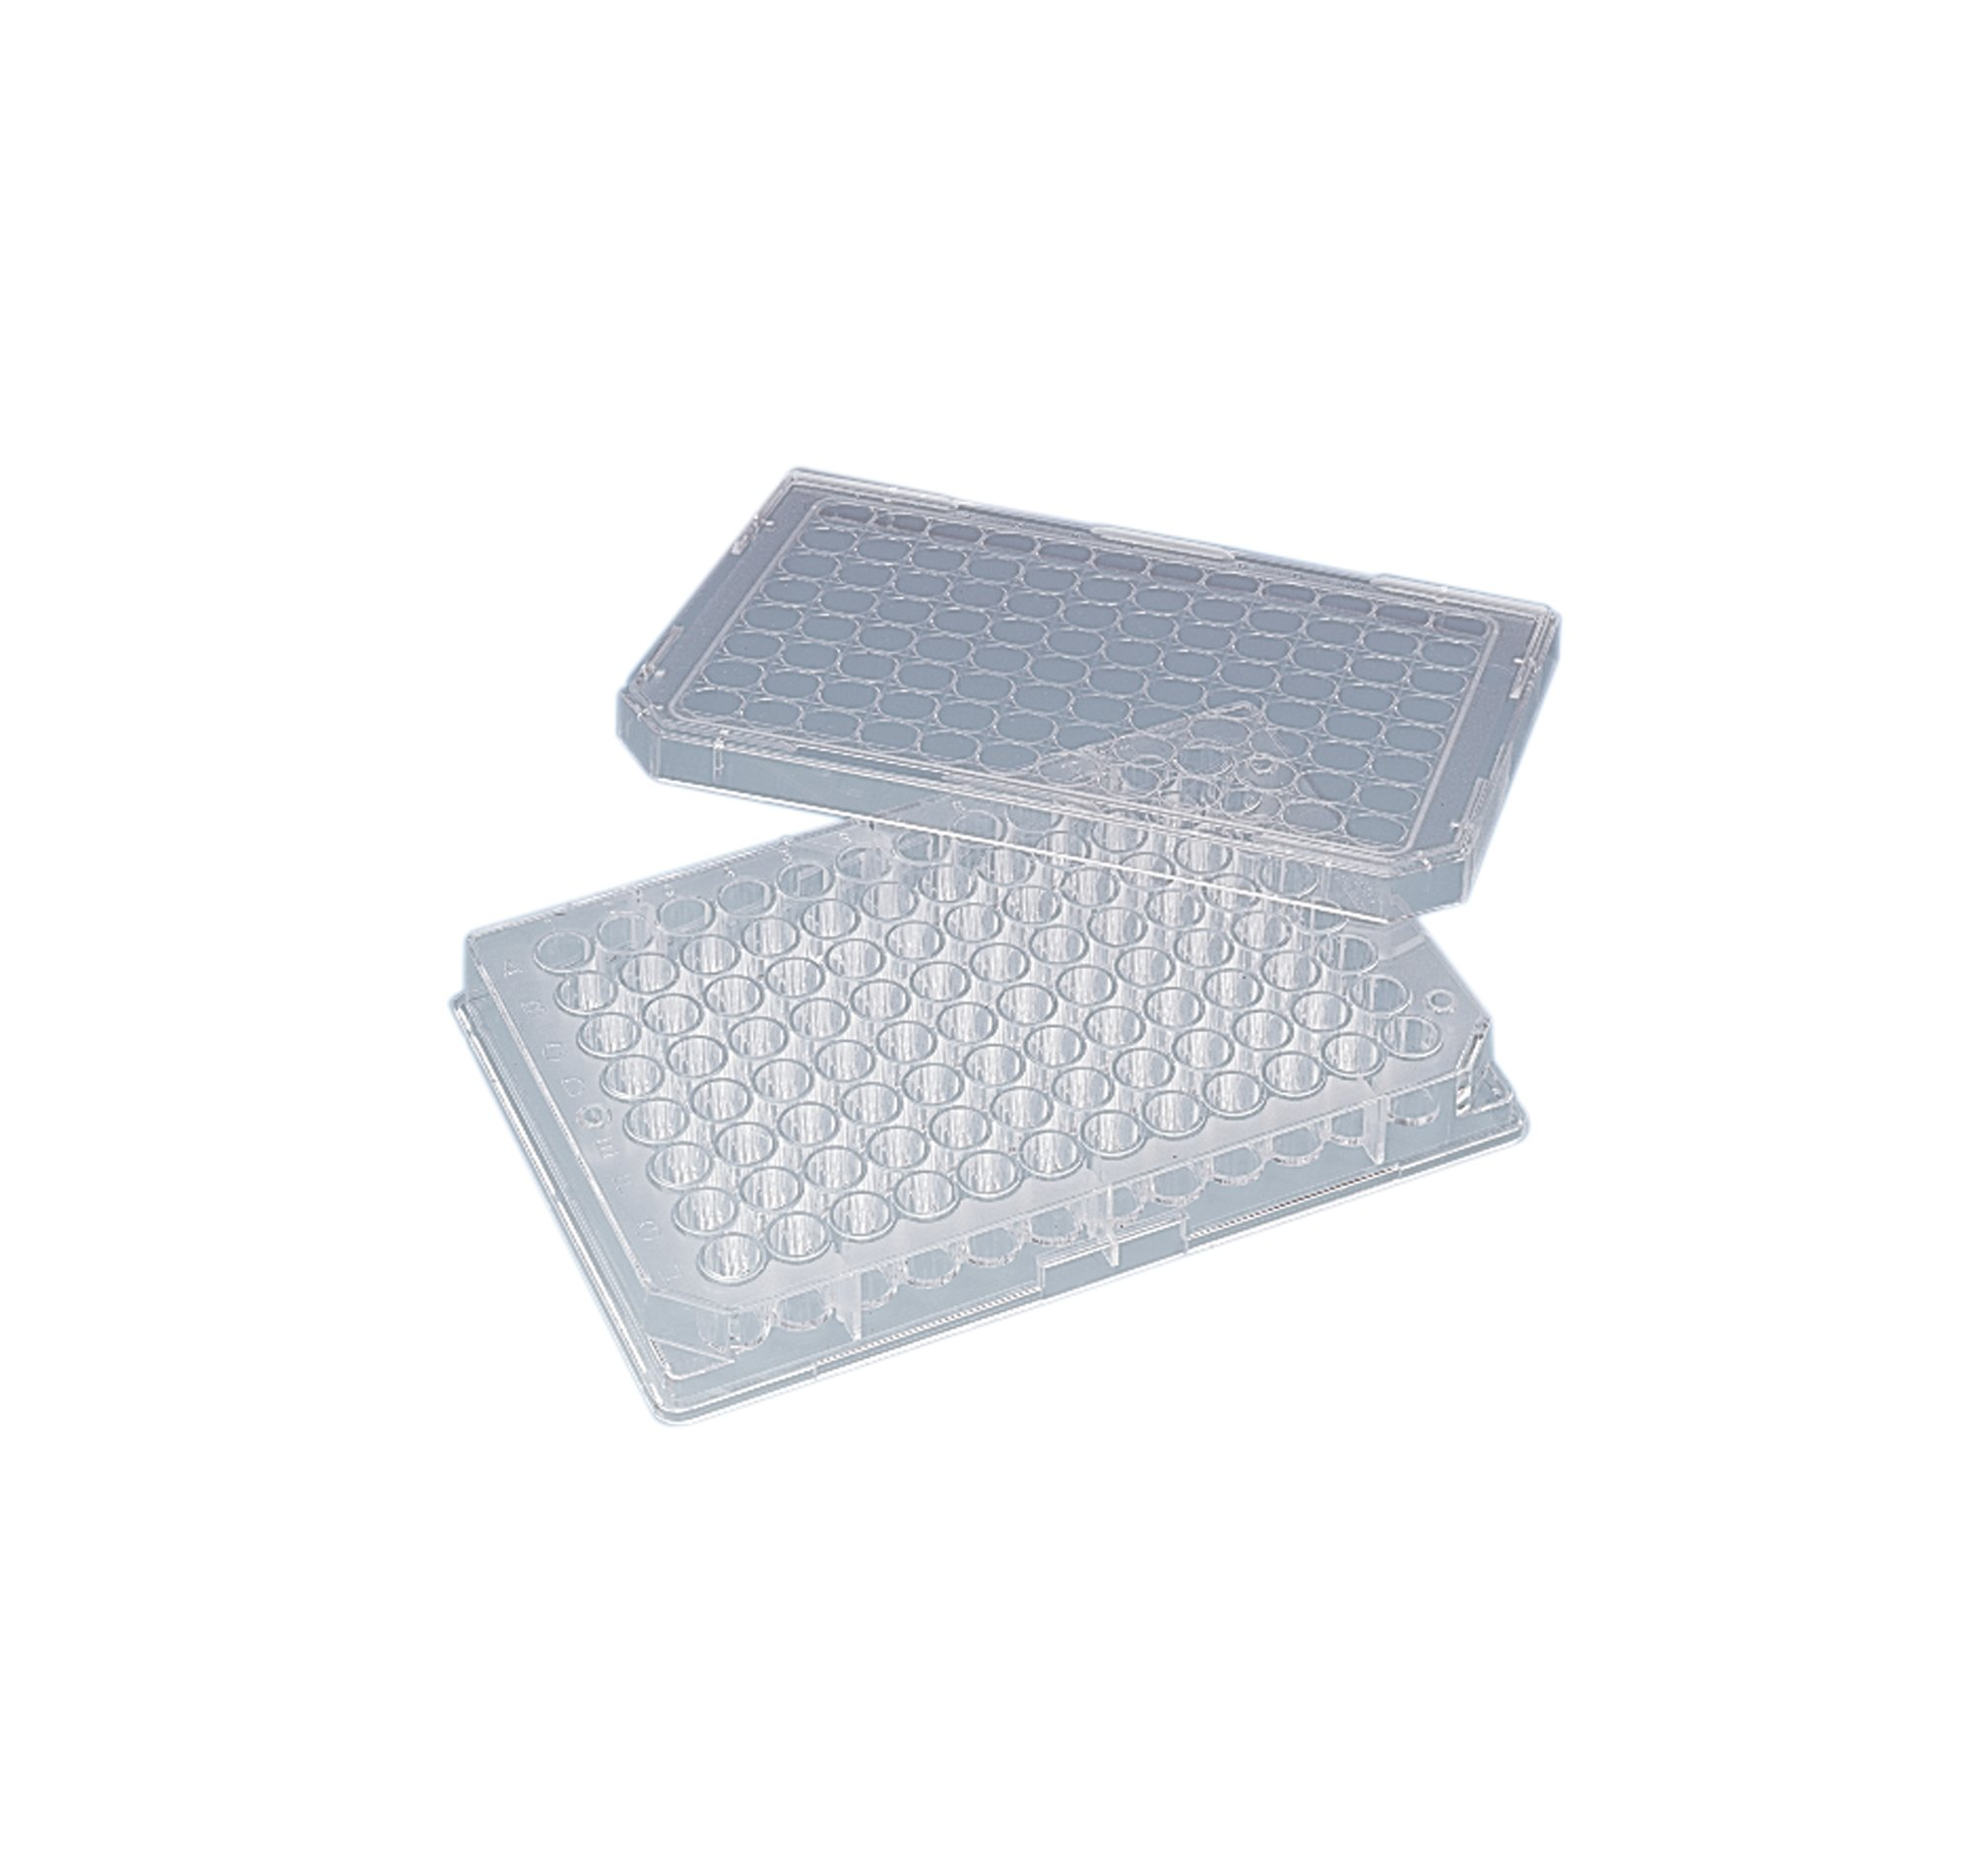 Nunc U96 MicroWell Polystyrene Clear Cell Culture Plates, 300µl Total Volume, 128mm L x 86mm W (Case of 50)